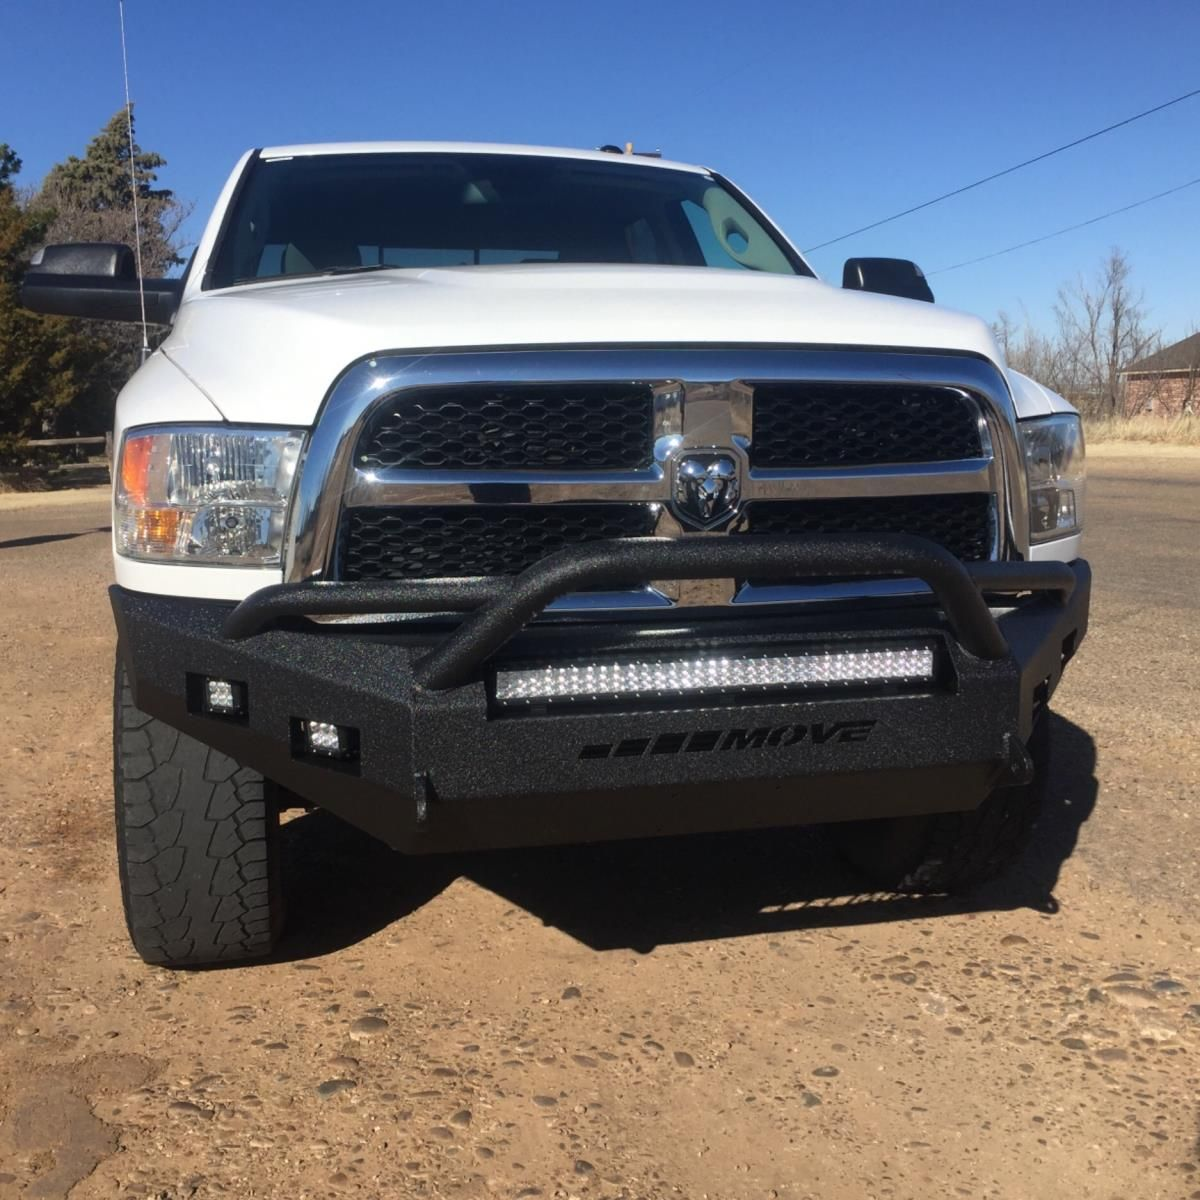 Move Bumpers Welded Diy Bumpers Customizable Template Bumpers Truck Bumpers Diy Bumper